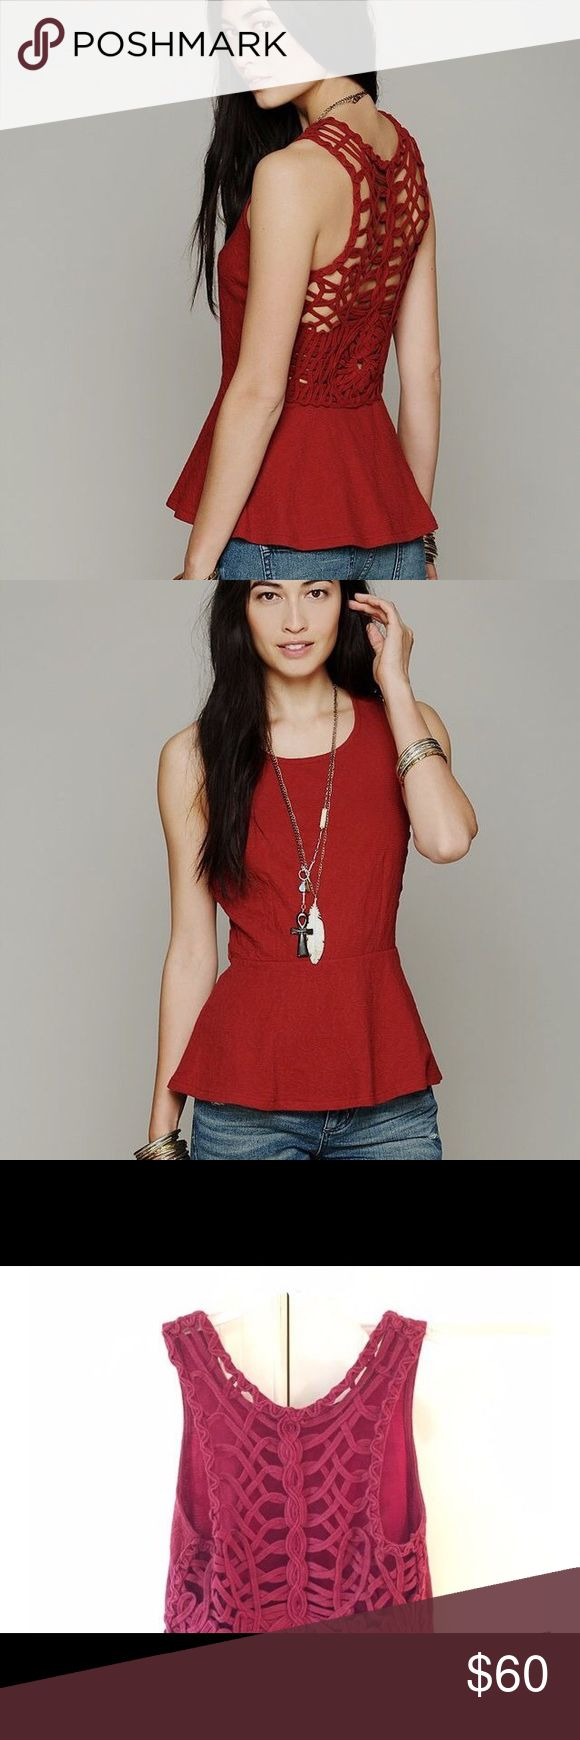 Free People red peplum top Gorgeous Free People red peplum top with intricate woven lace back detail. Perfect for going out in and making a statement. Worn only a handful of times and still in like-new perfect condition. Free People Tops Blouses